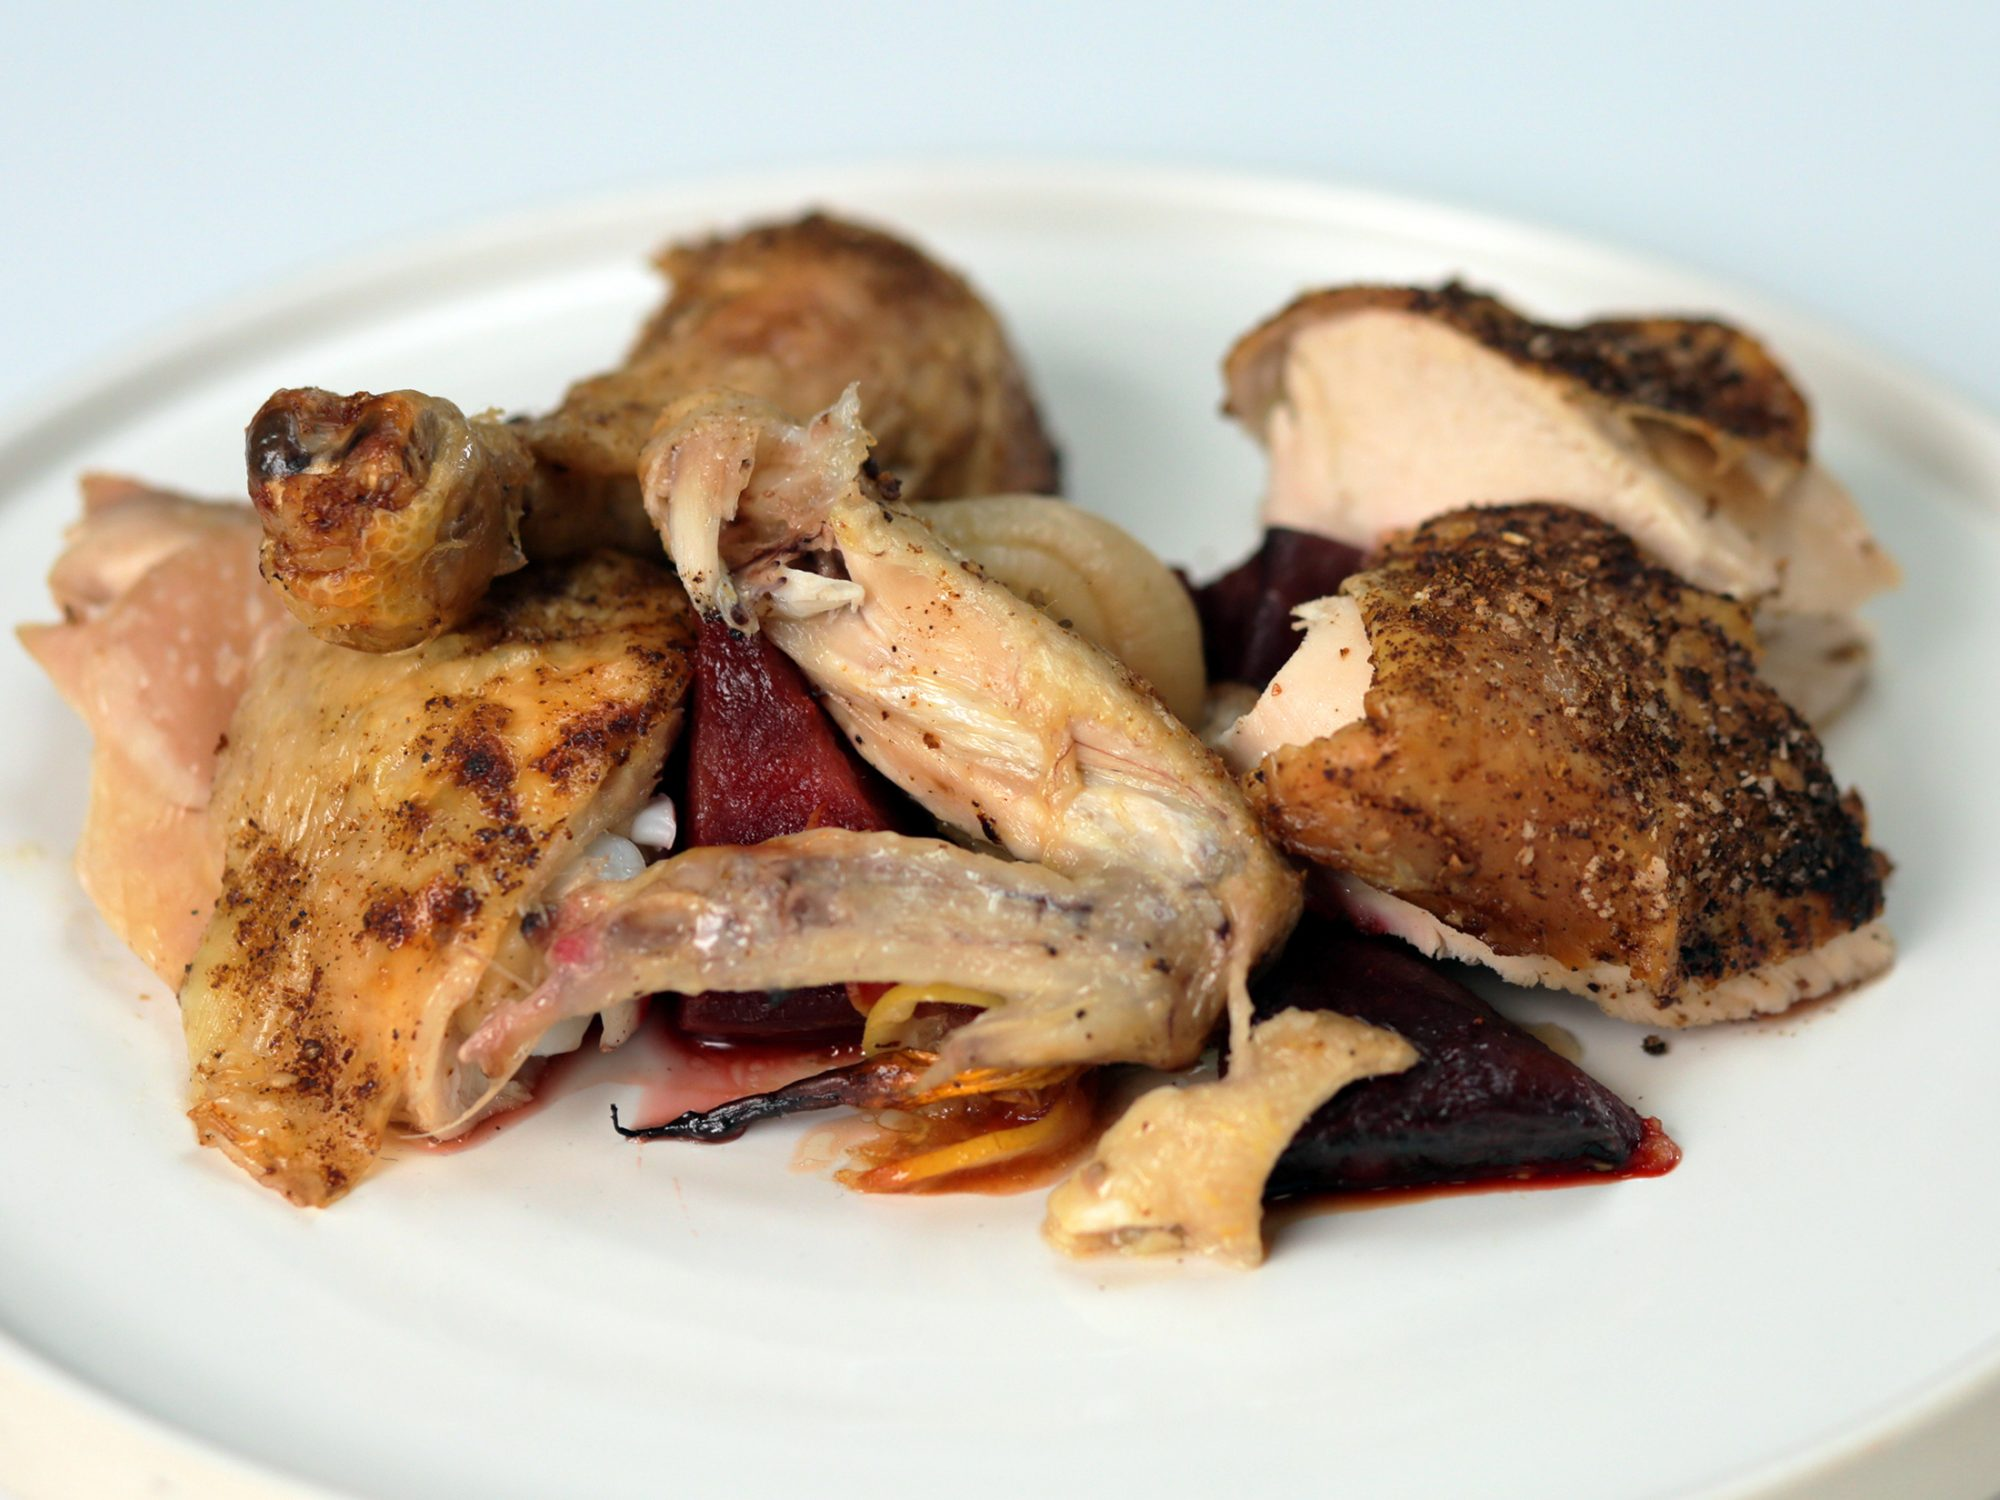 Roast Chicken With Dukkah and Citrus Over Roasted Vegetables image